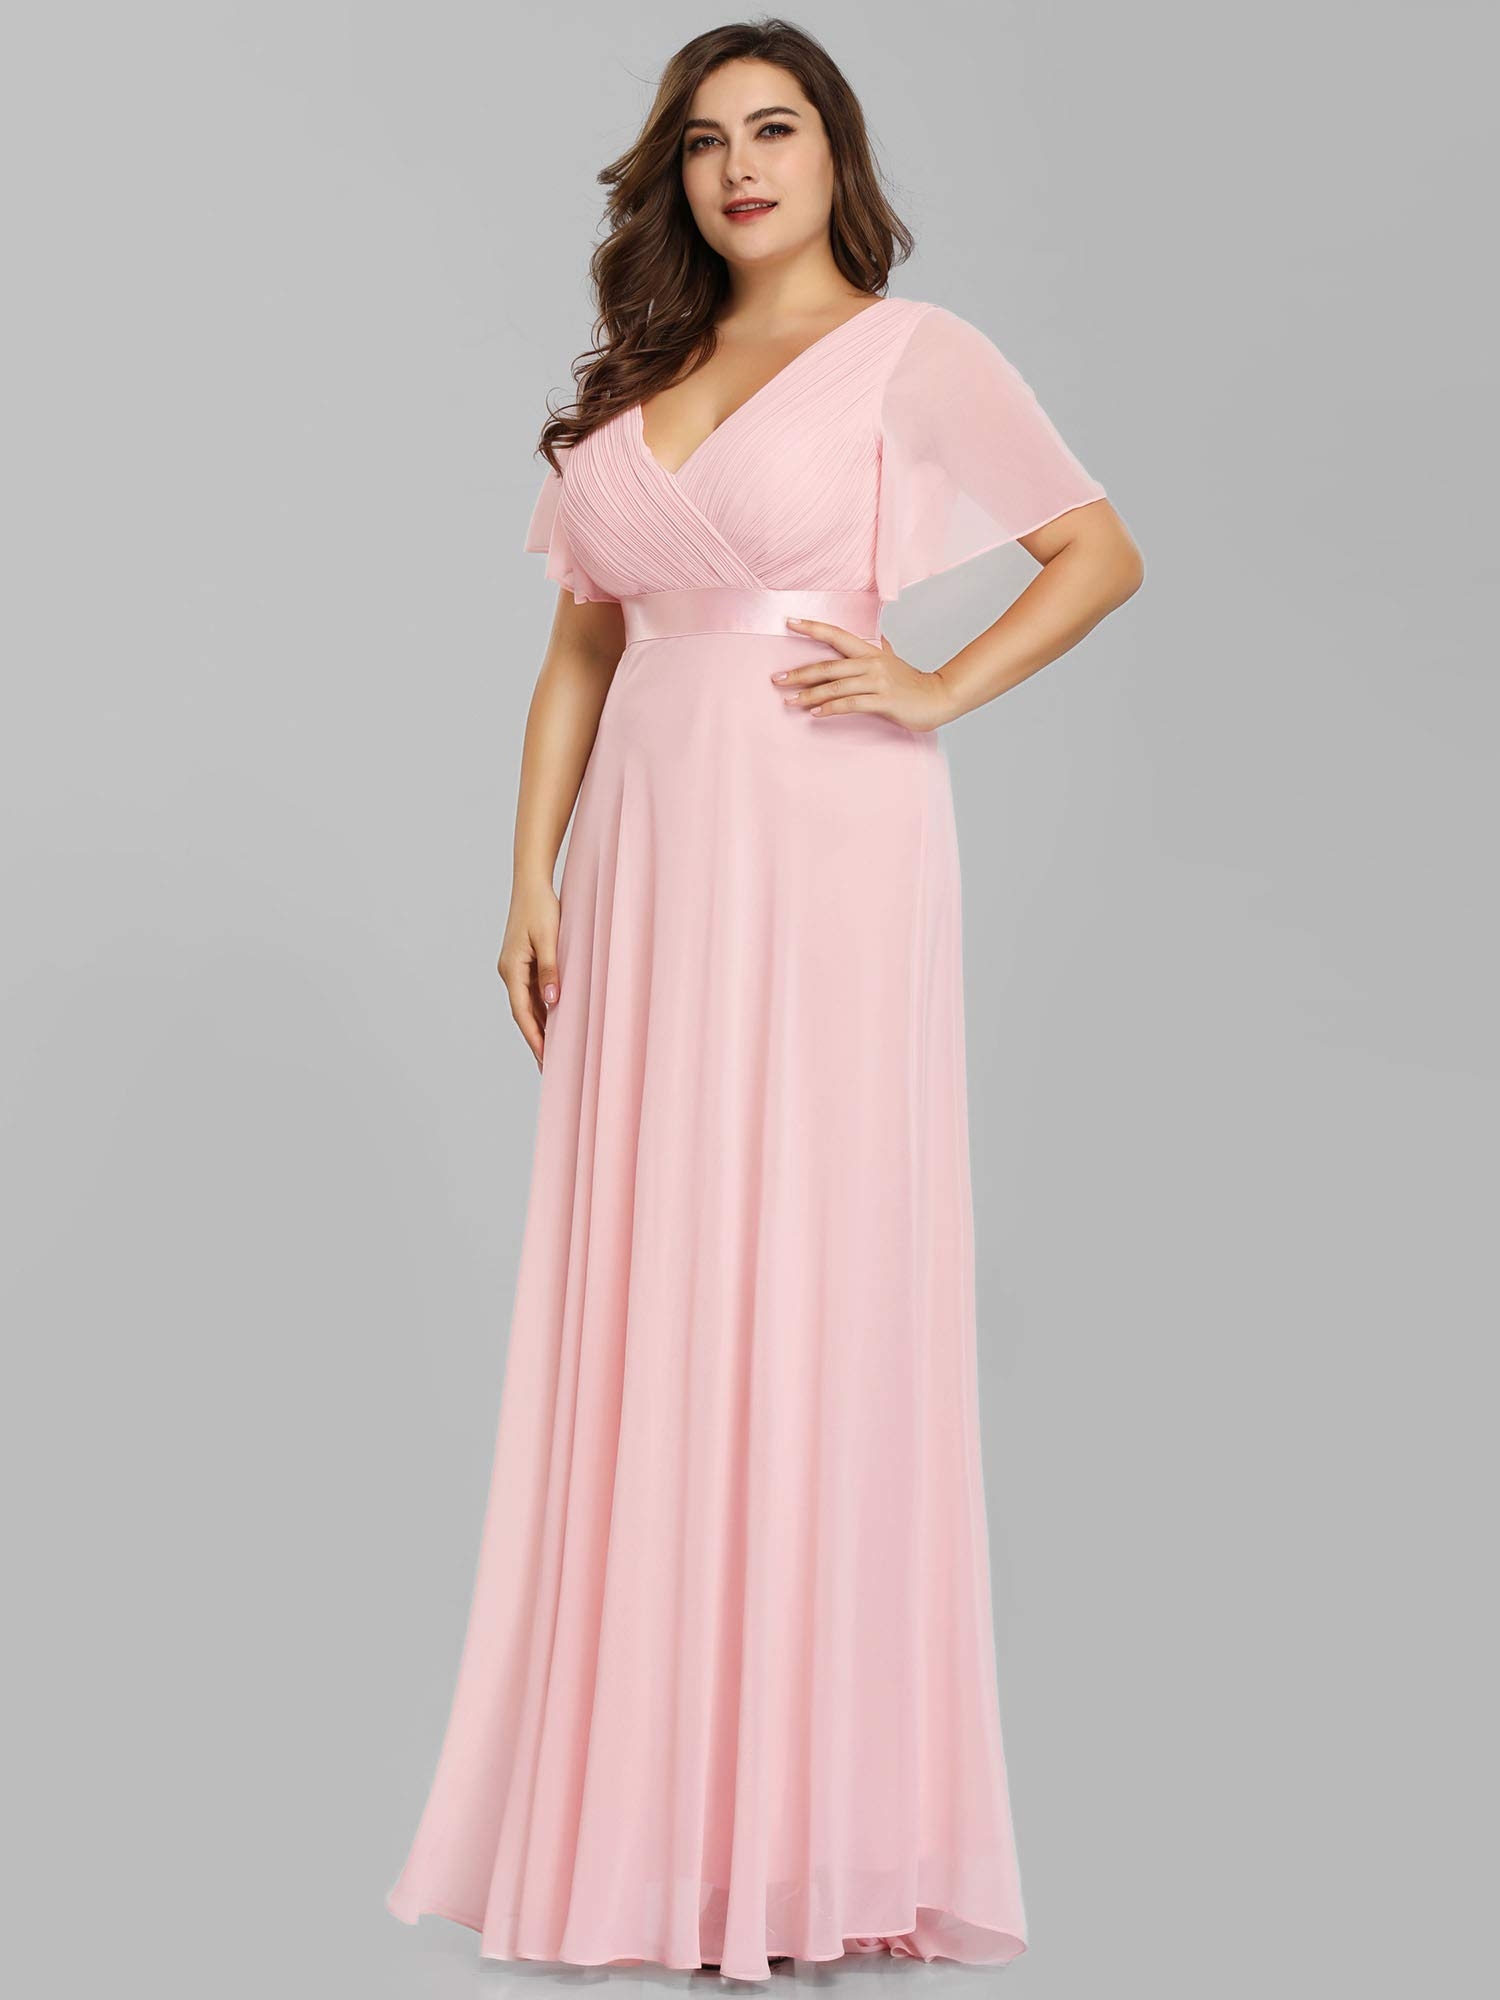 Ever-Pretty Women\'s Wedding Guest Dresses Formal Dresses Plus Size Pink US20